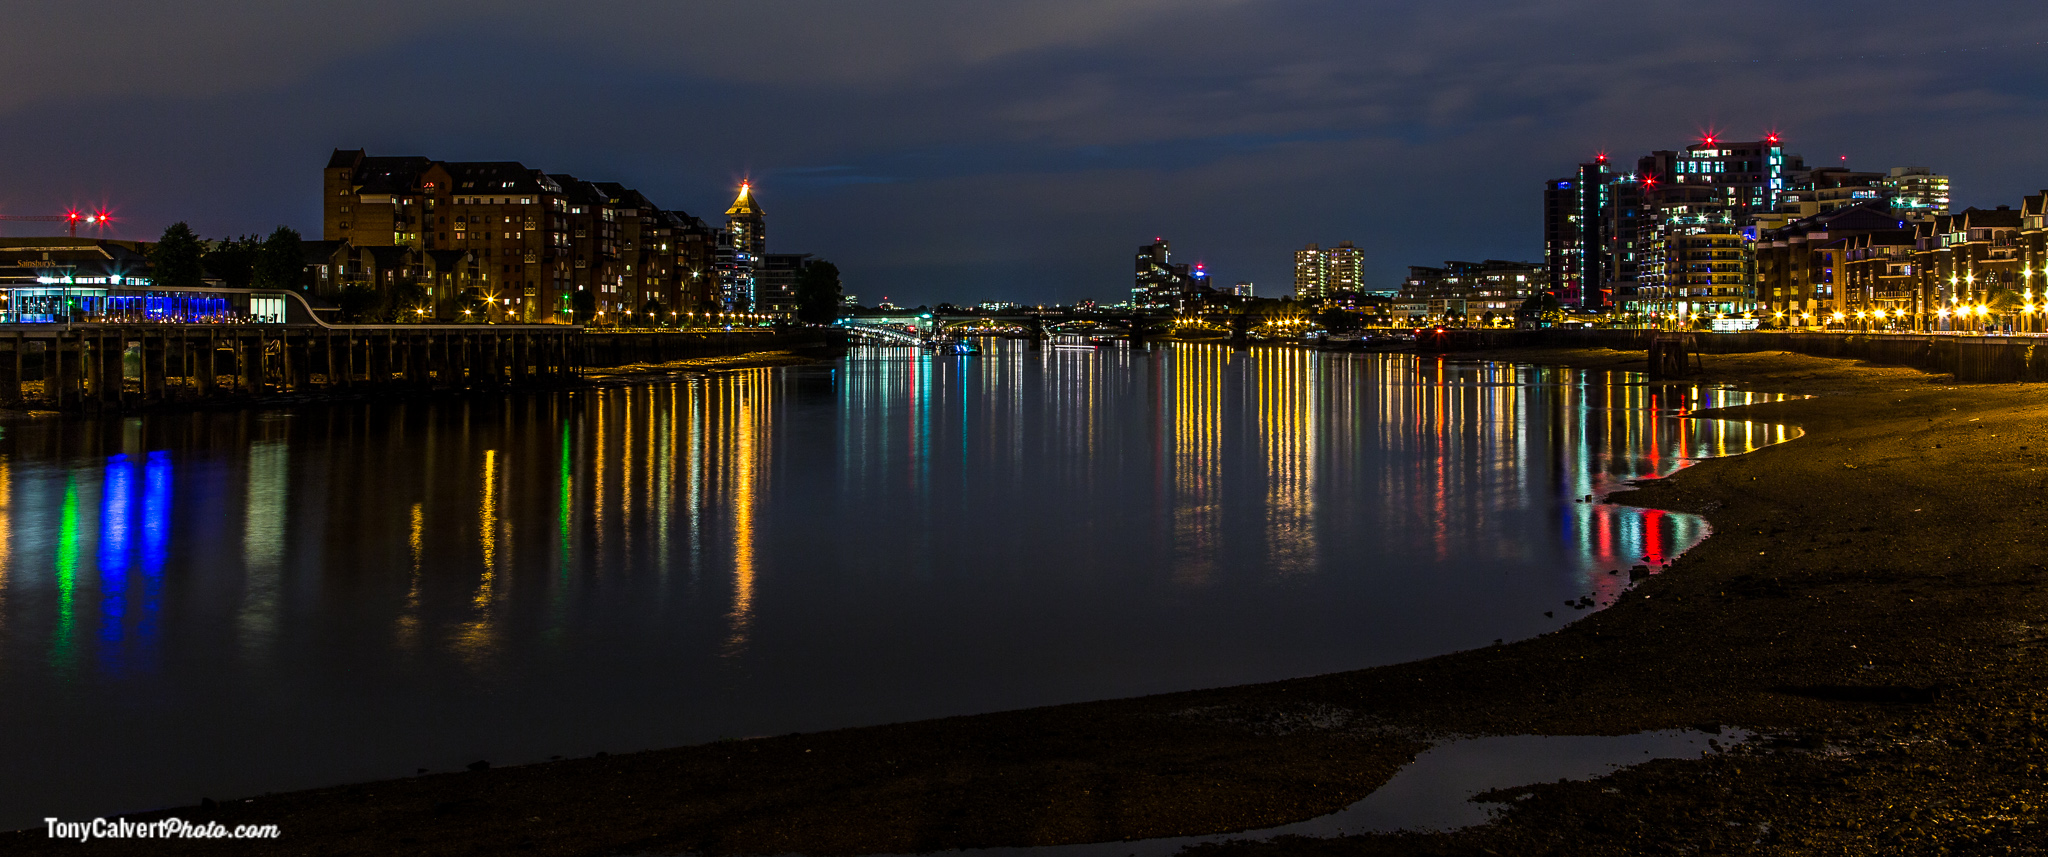 Low tide on the Thames at night